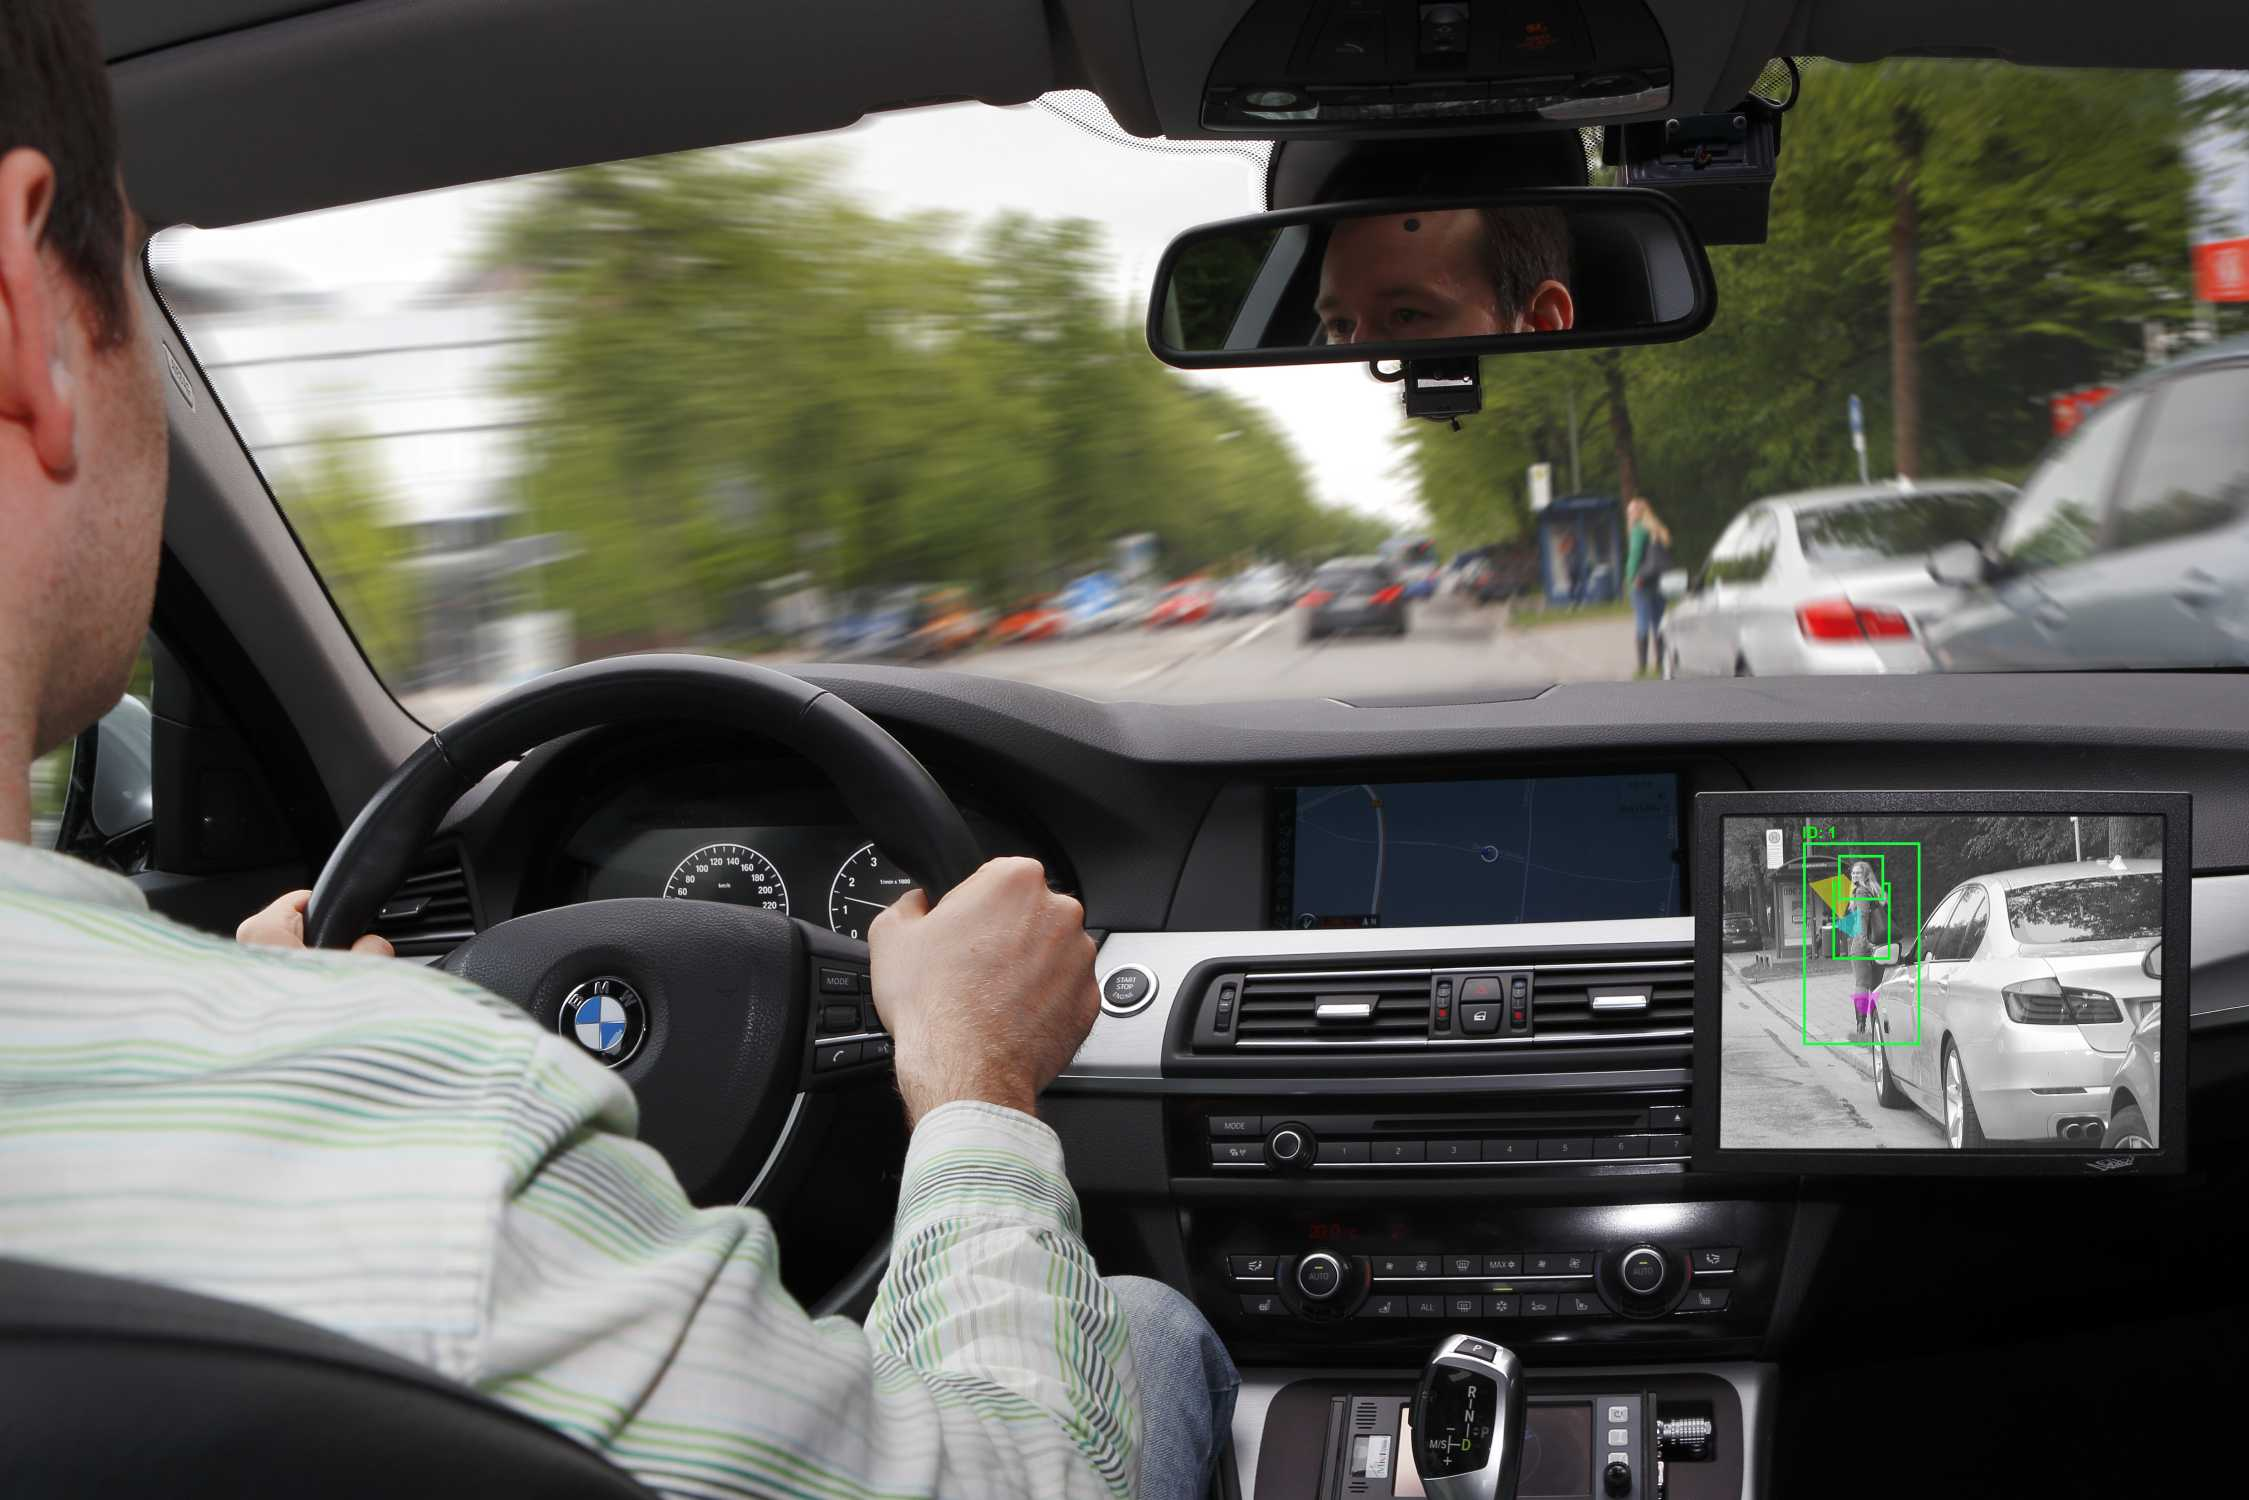 Ur Ban Research Initiative Specialists From The Bmw Group Are Developing Intelligent Driver Assistance And Traffic Management Systems For Enhanced Safety Comfort And Efficiency In Tomorrow S Cities